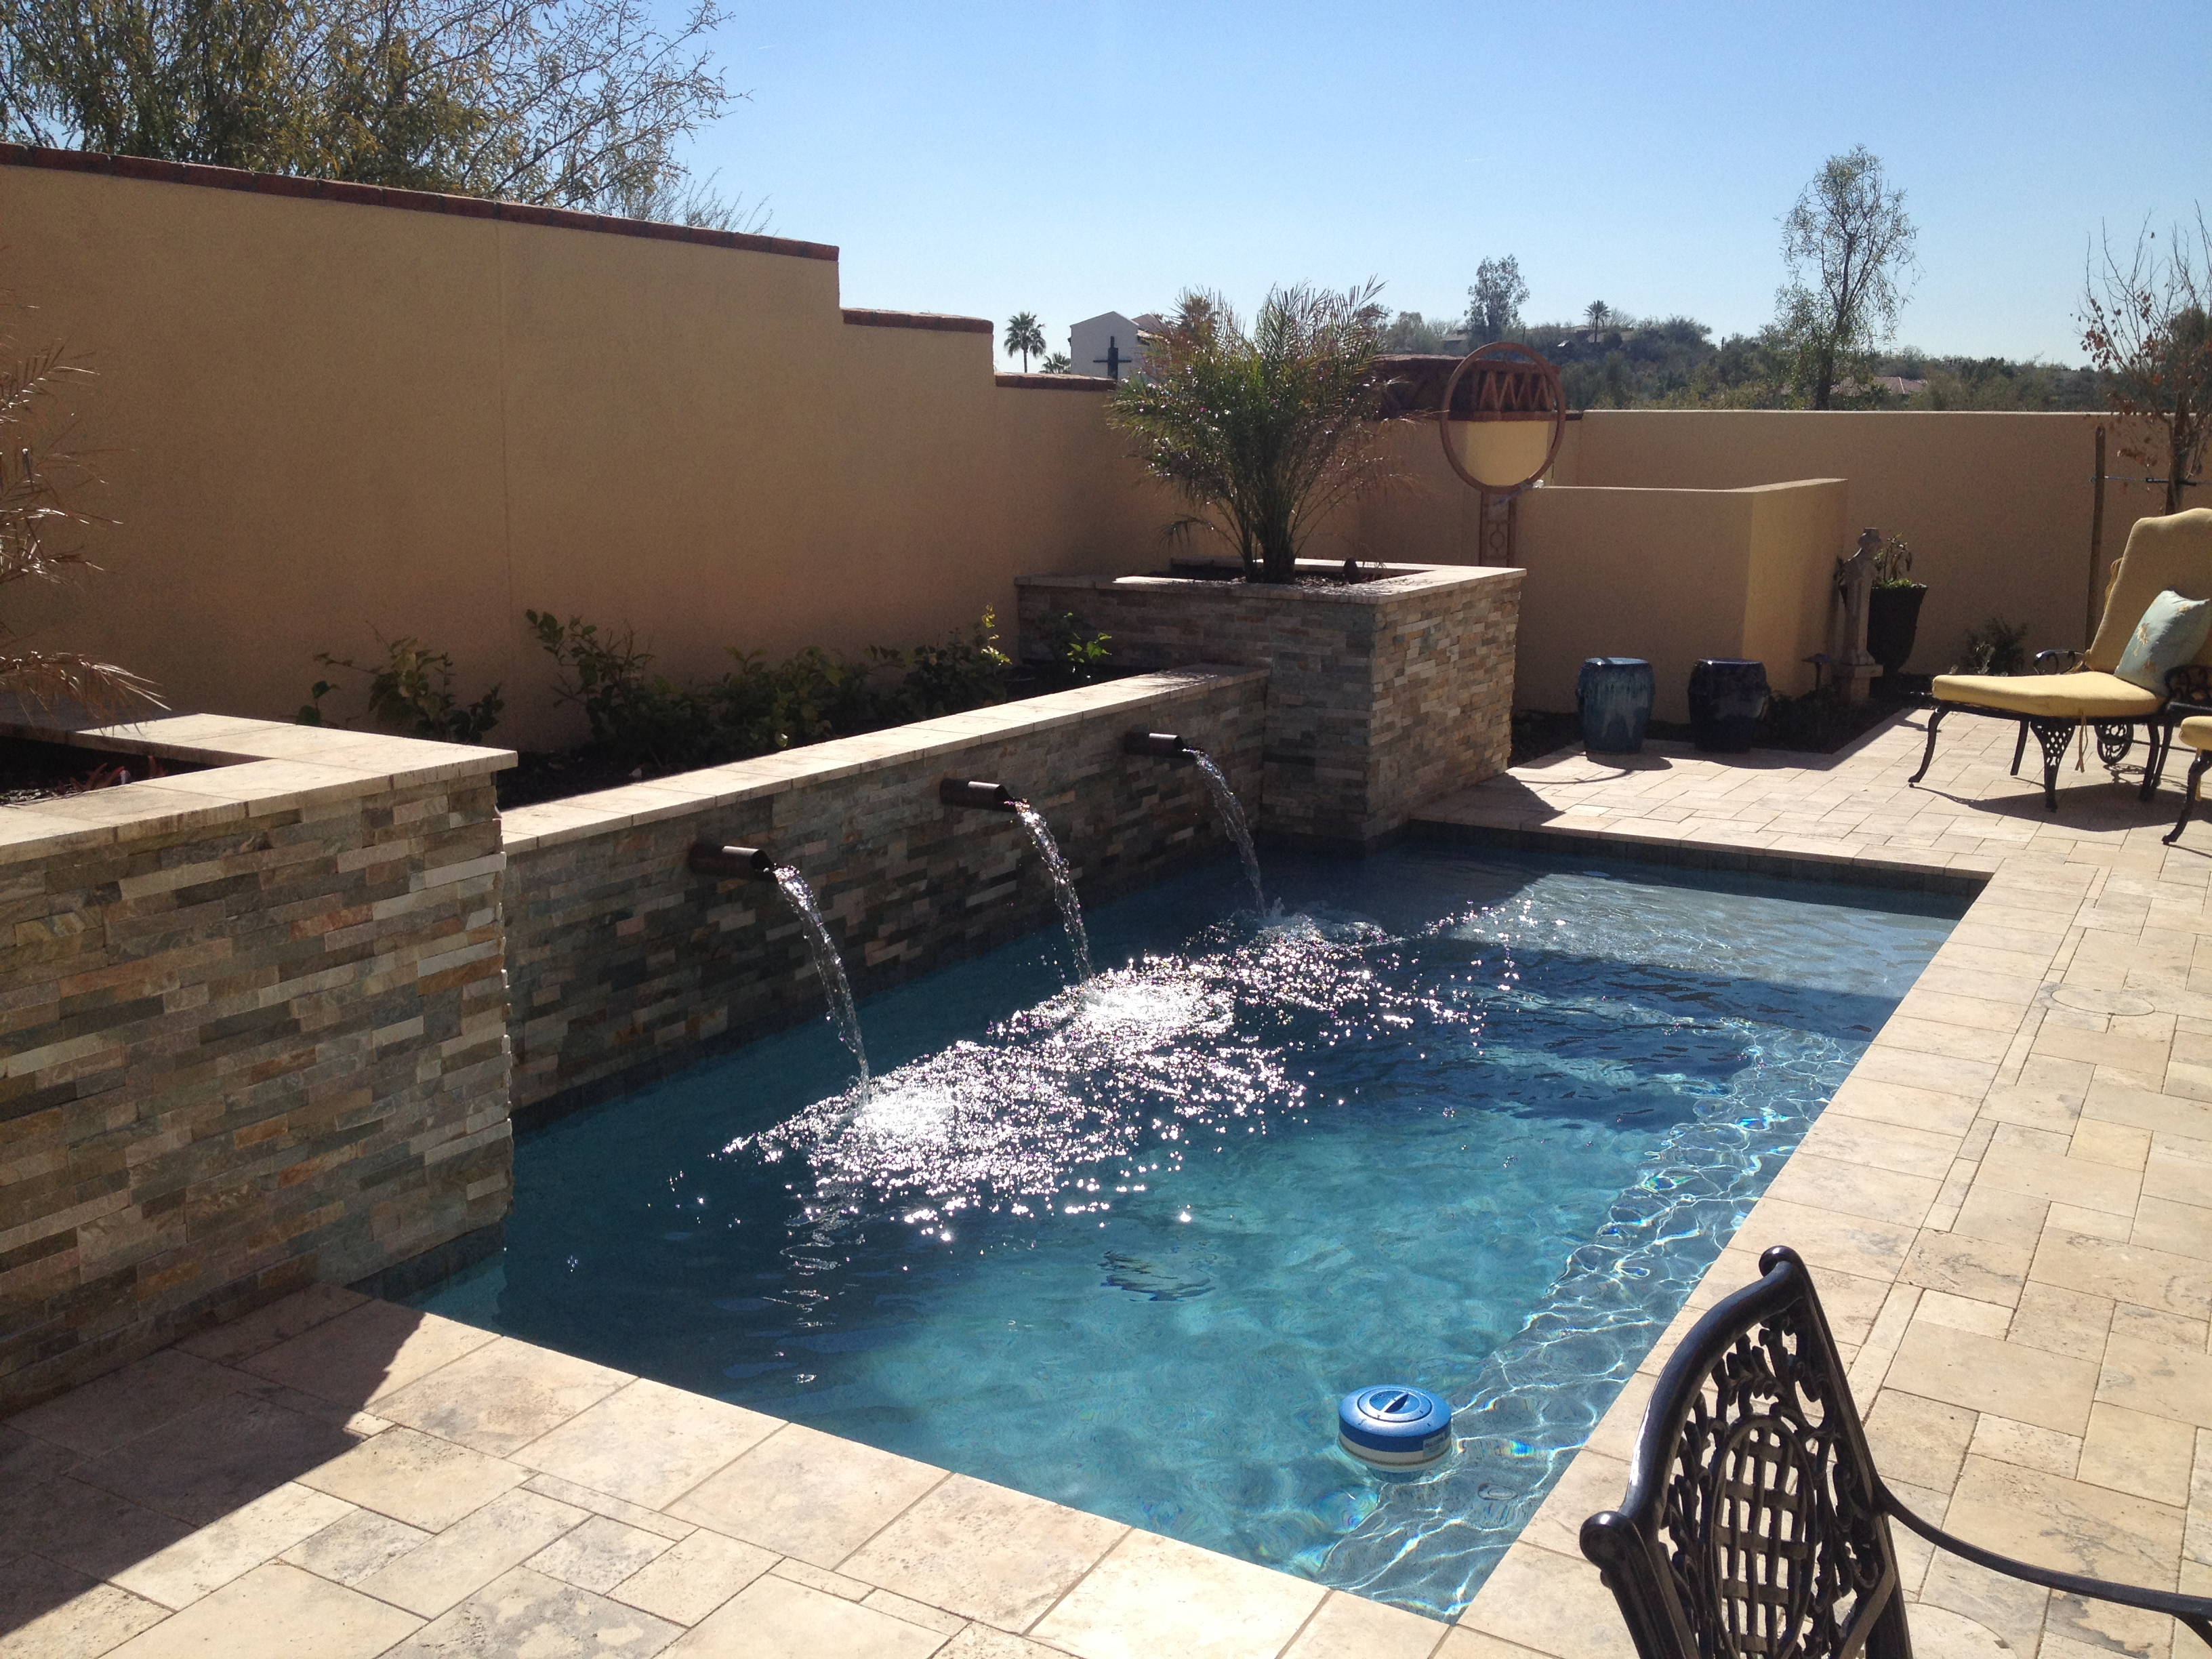 pools-walls-waterfeatures-travertine